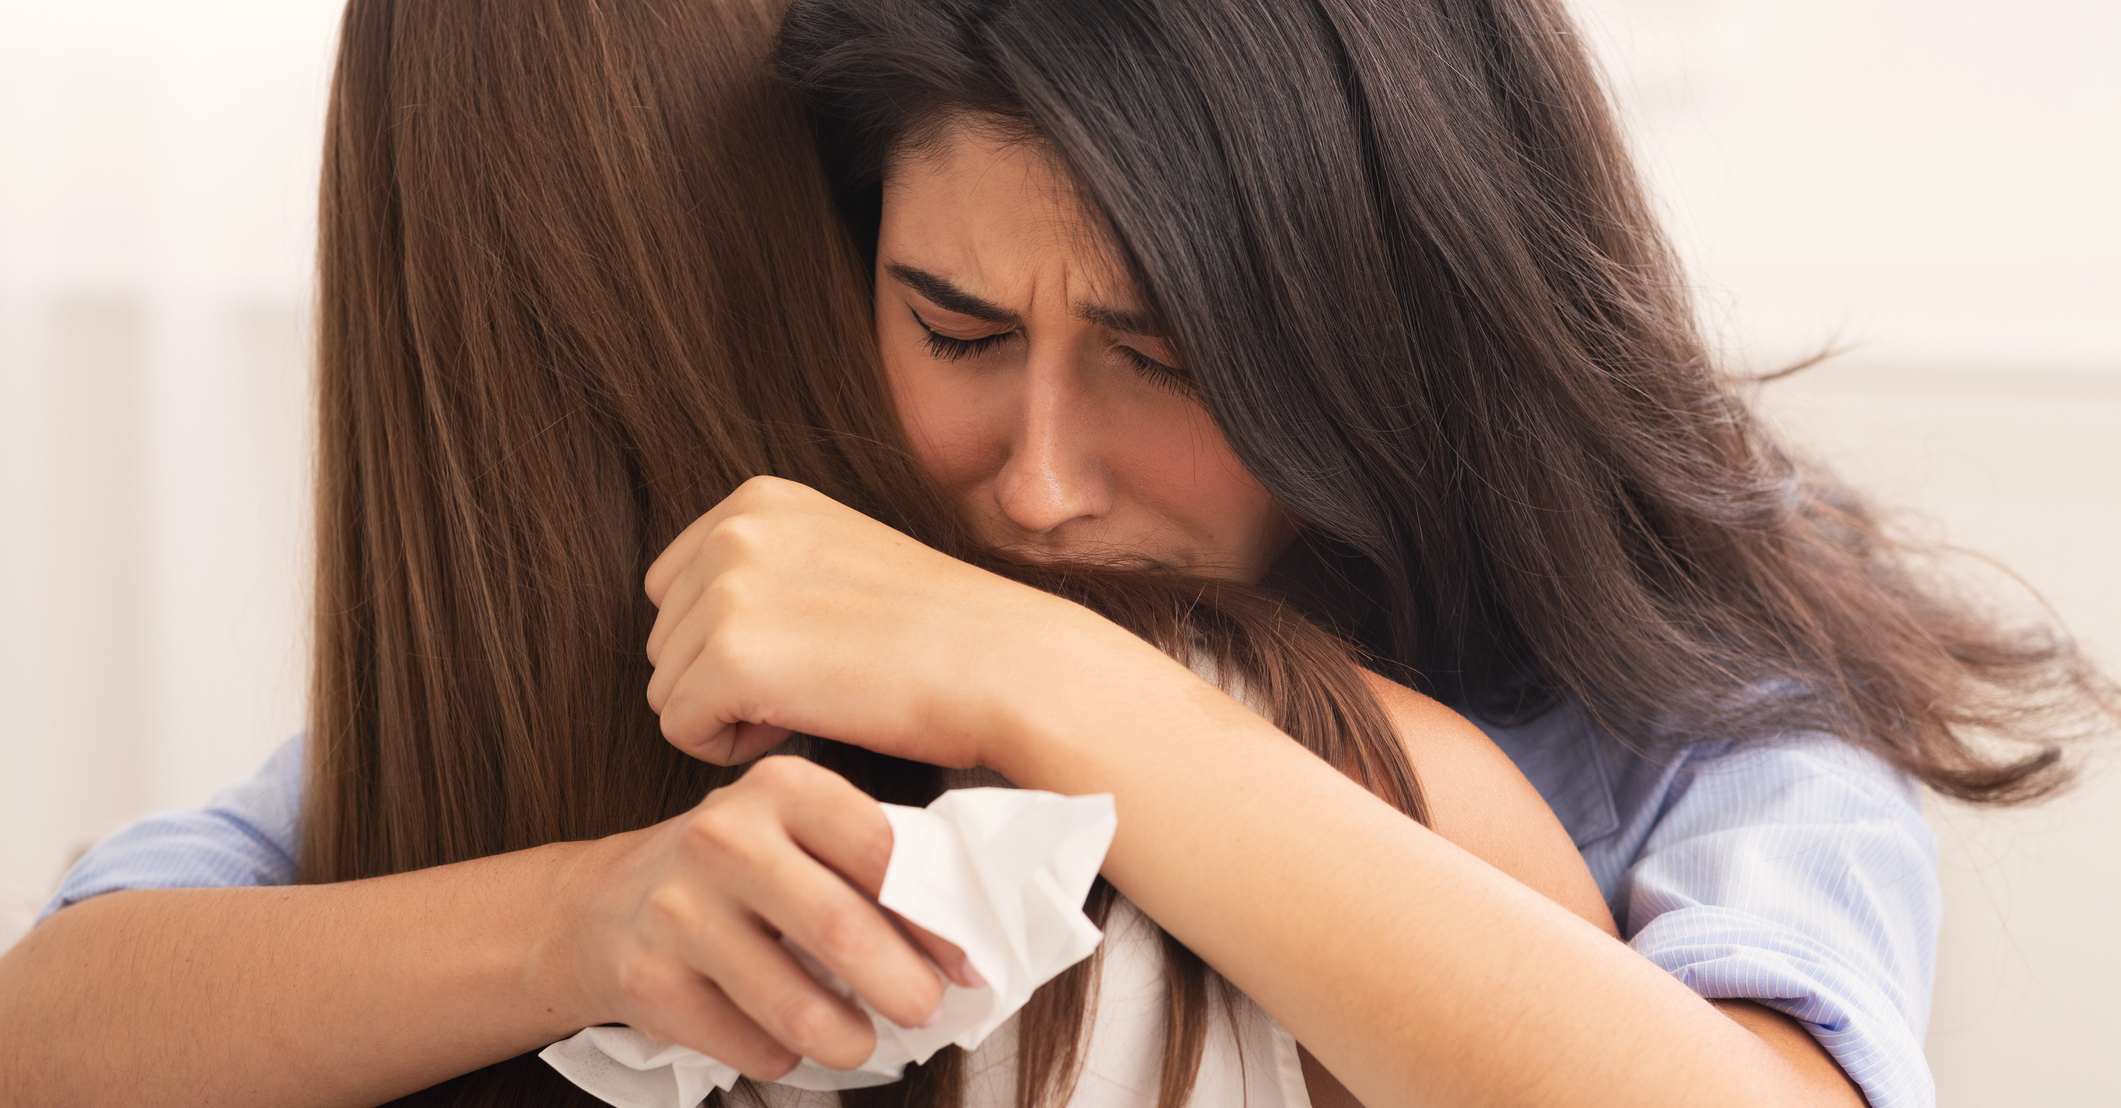 10 Ways to Show a Suffering Friend You're There for Them